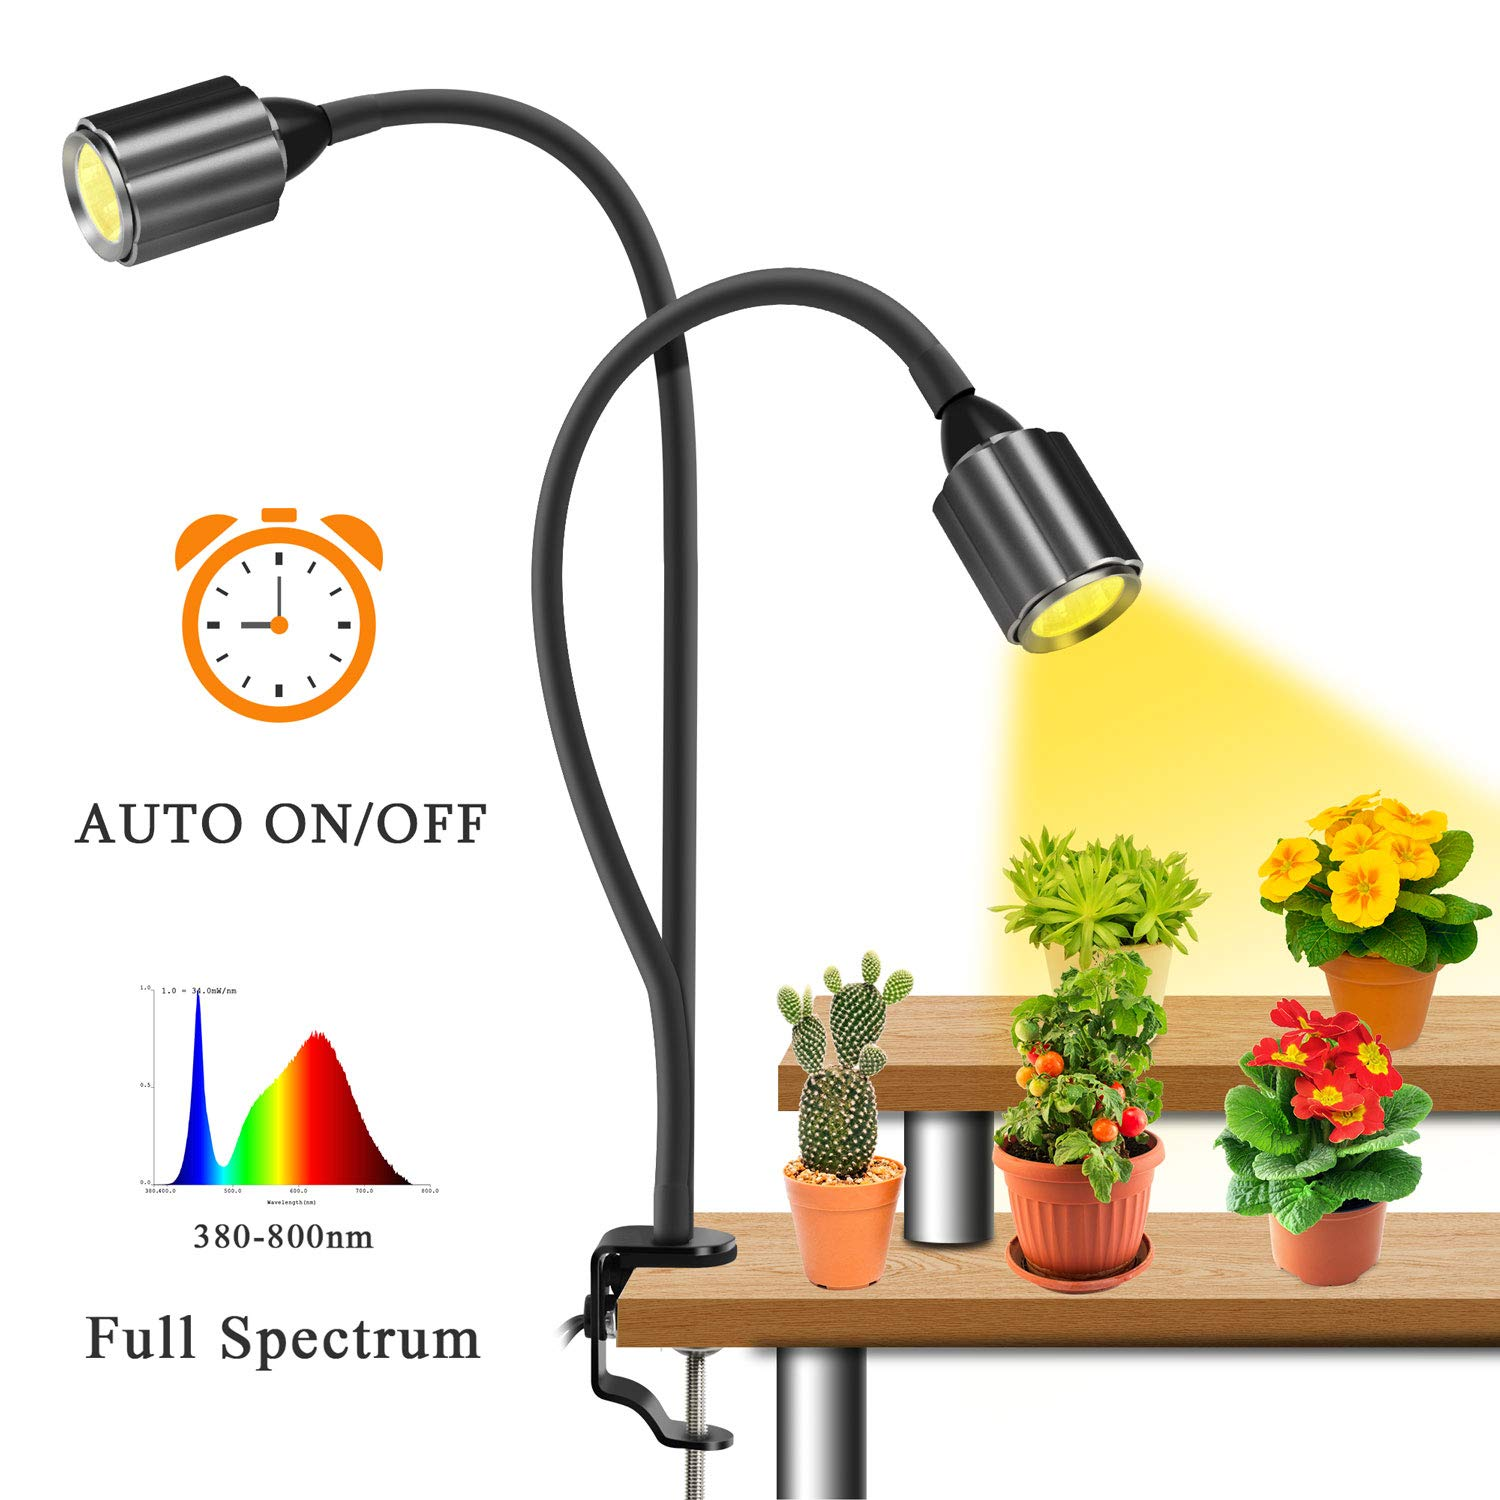 Grow Light for Indoor Plants,OBSESS 75W Dual Head LED COB Plant Grow Lamp 3/6/12H Timer 6 dimmable Level with C-clamp Rose Flower Shape Design Sunlike Full Spectrum Grow Light for Bonsai Succulent